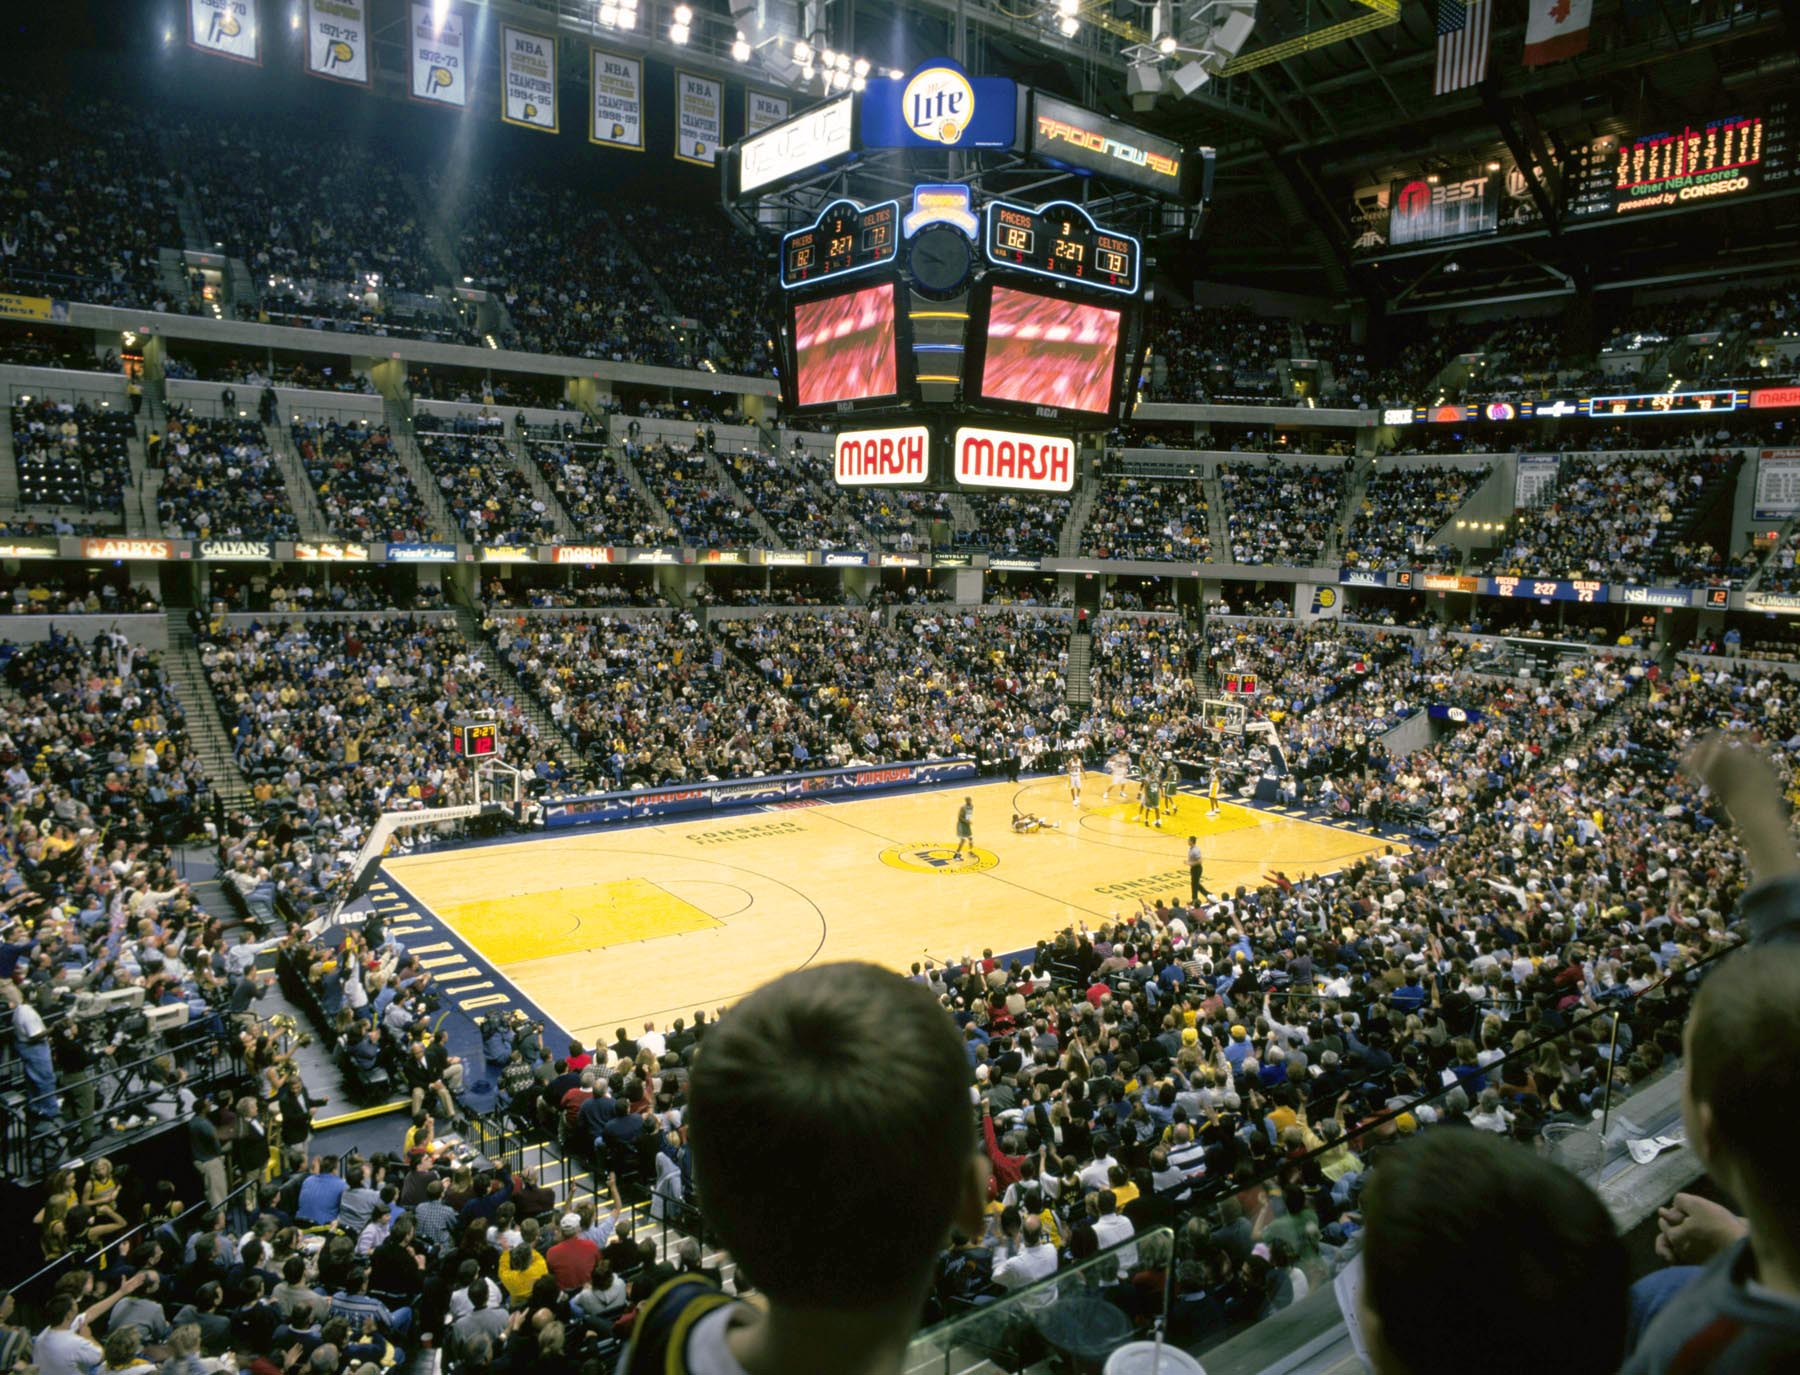 Conseco Fieldhouse  Doing Indy